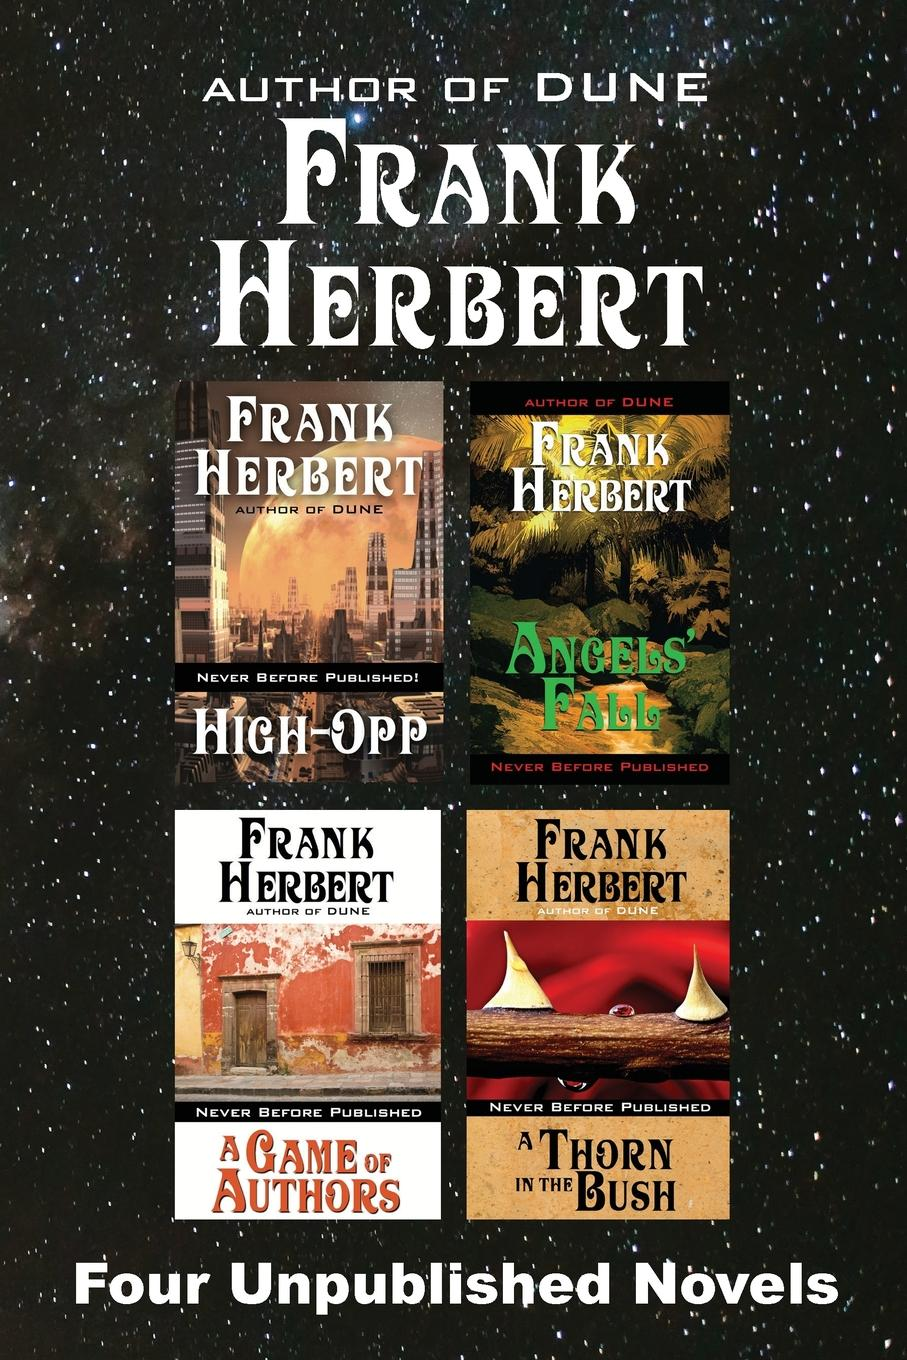 Frank Herbert Four Unpublished Novels. High-Opp, Angel.s Fall, A Game of Authors, A Thorn in the Bush